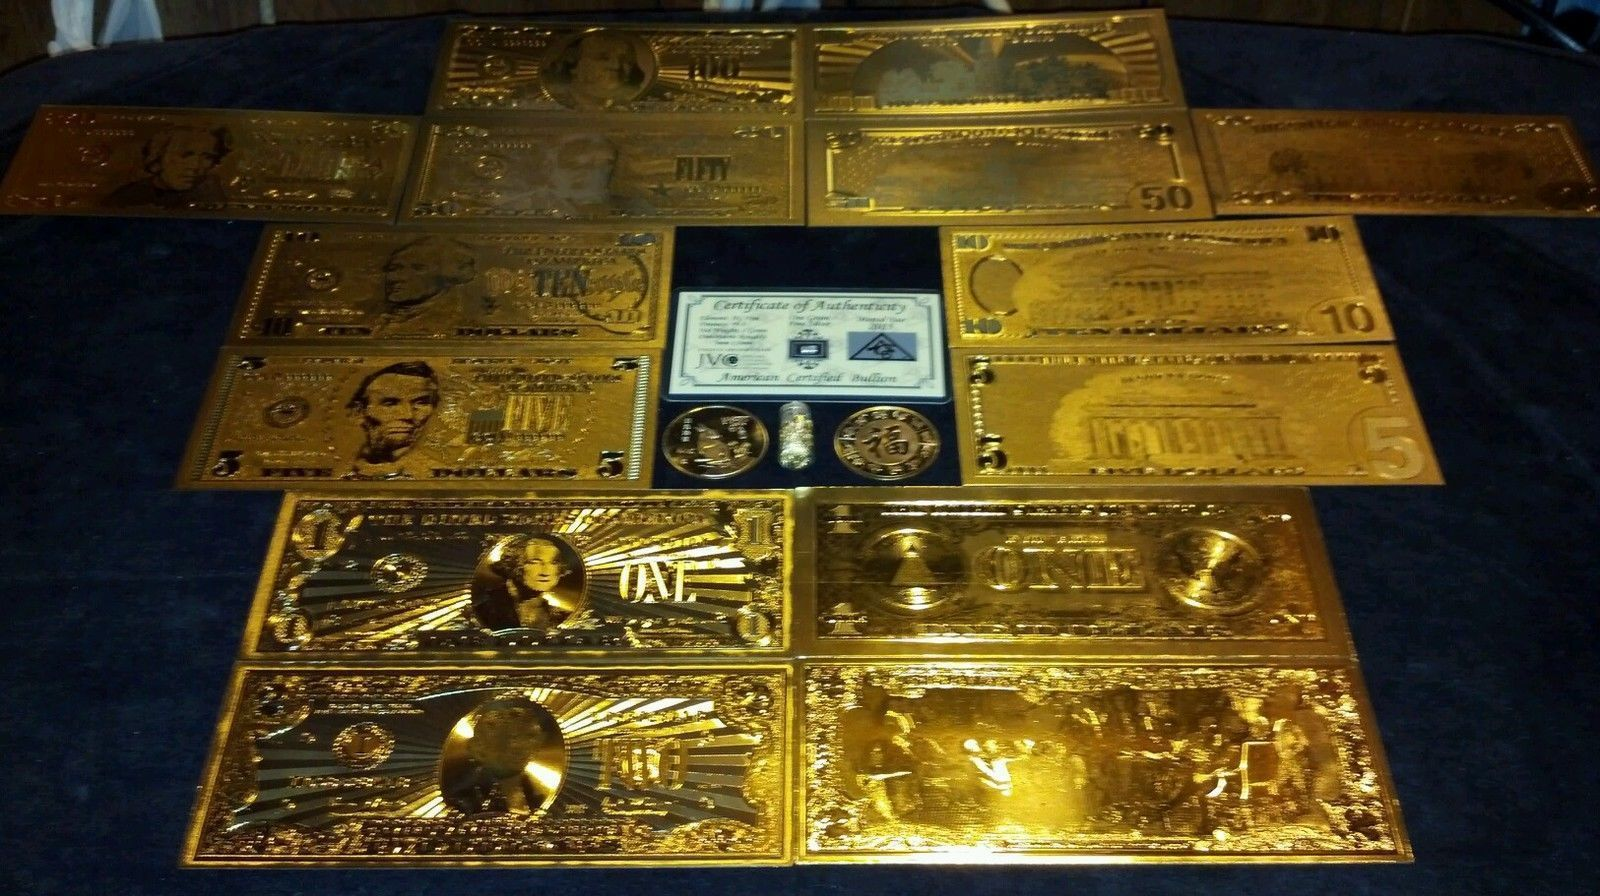 105 Pc.MIXED GOLD &/OR SILVER BANKNOTE REP.*(15 DIFFERENT TYPES-105 BILLS TOTAL)